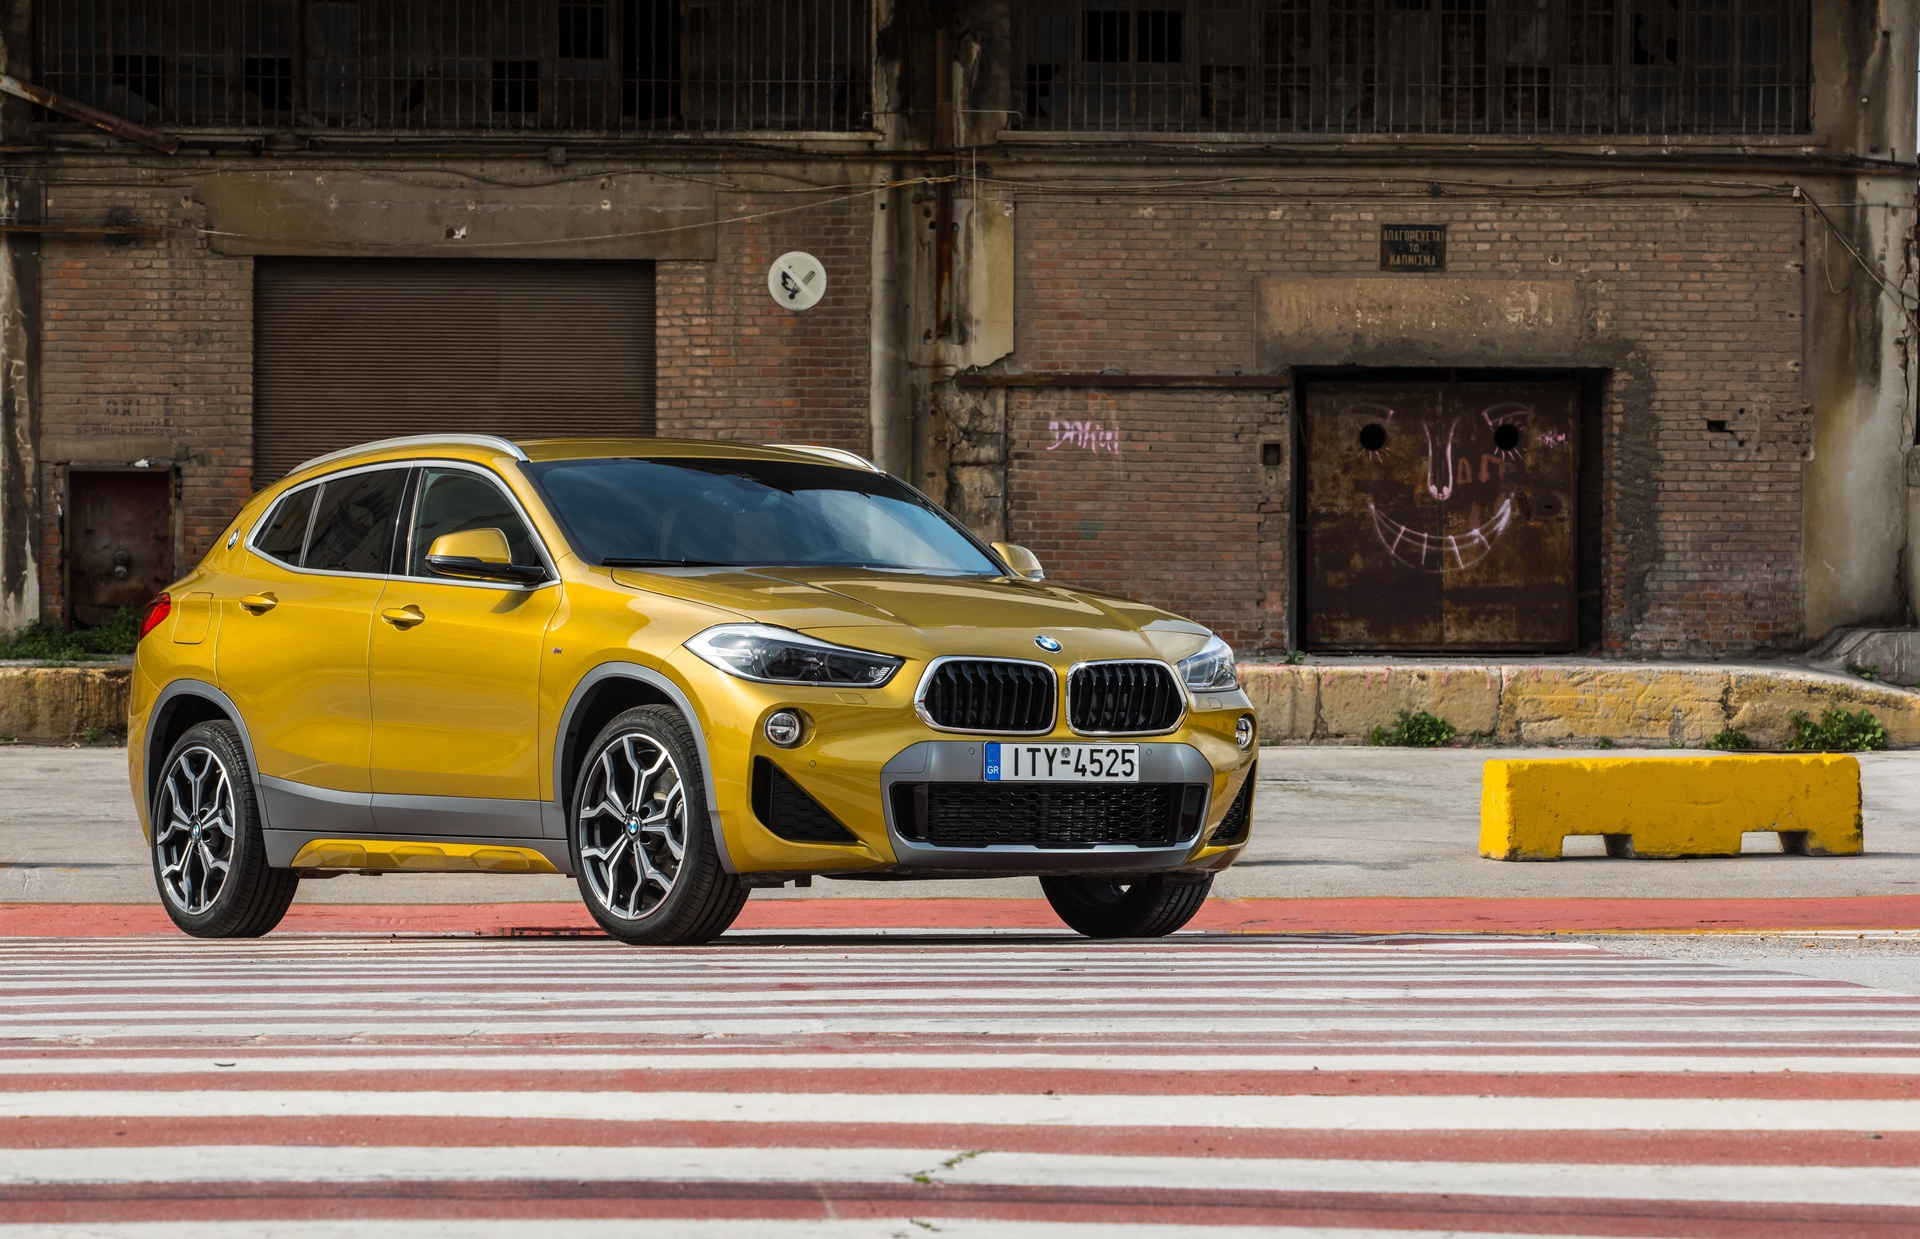 BMW_X2_Greek_presskit_0066